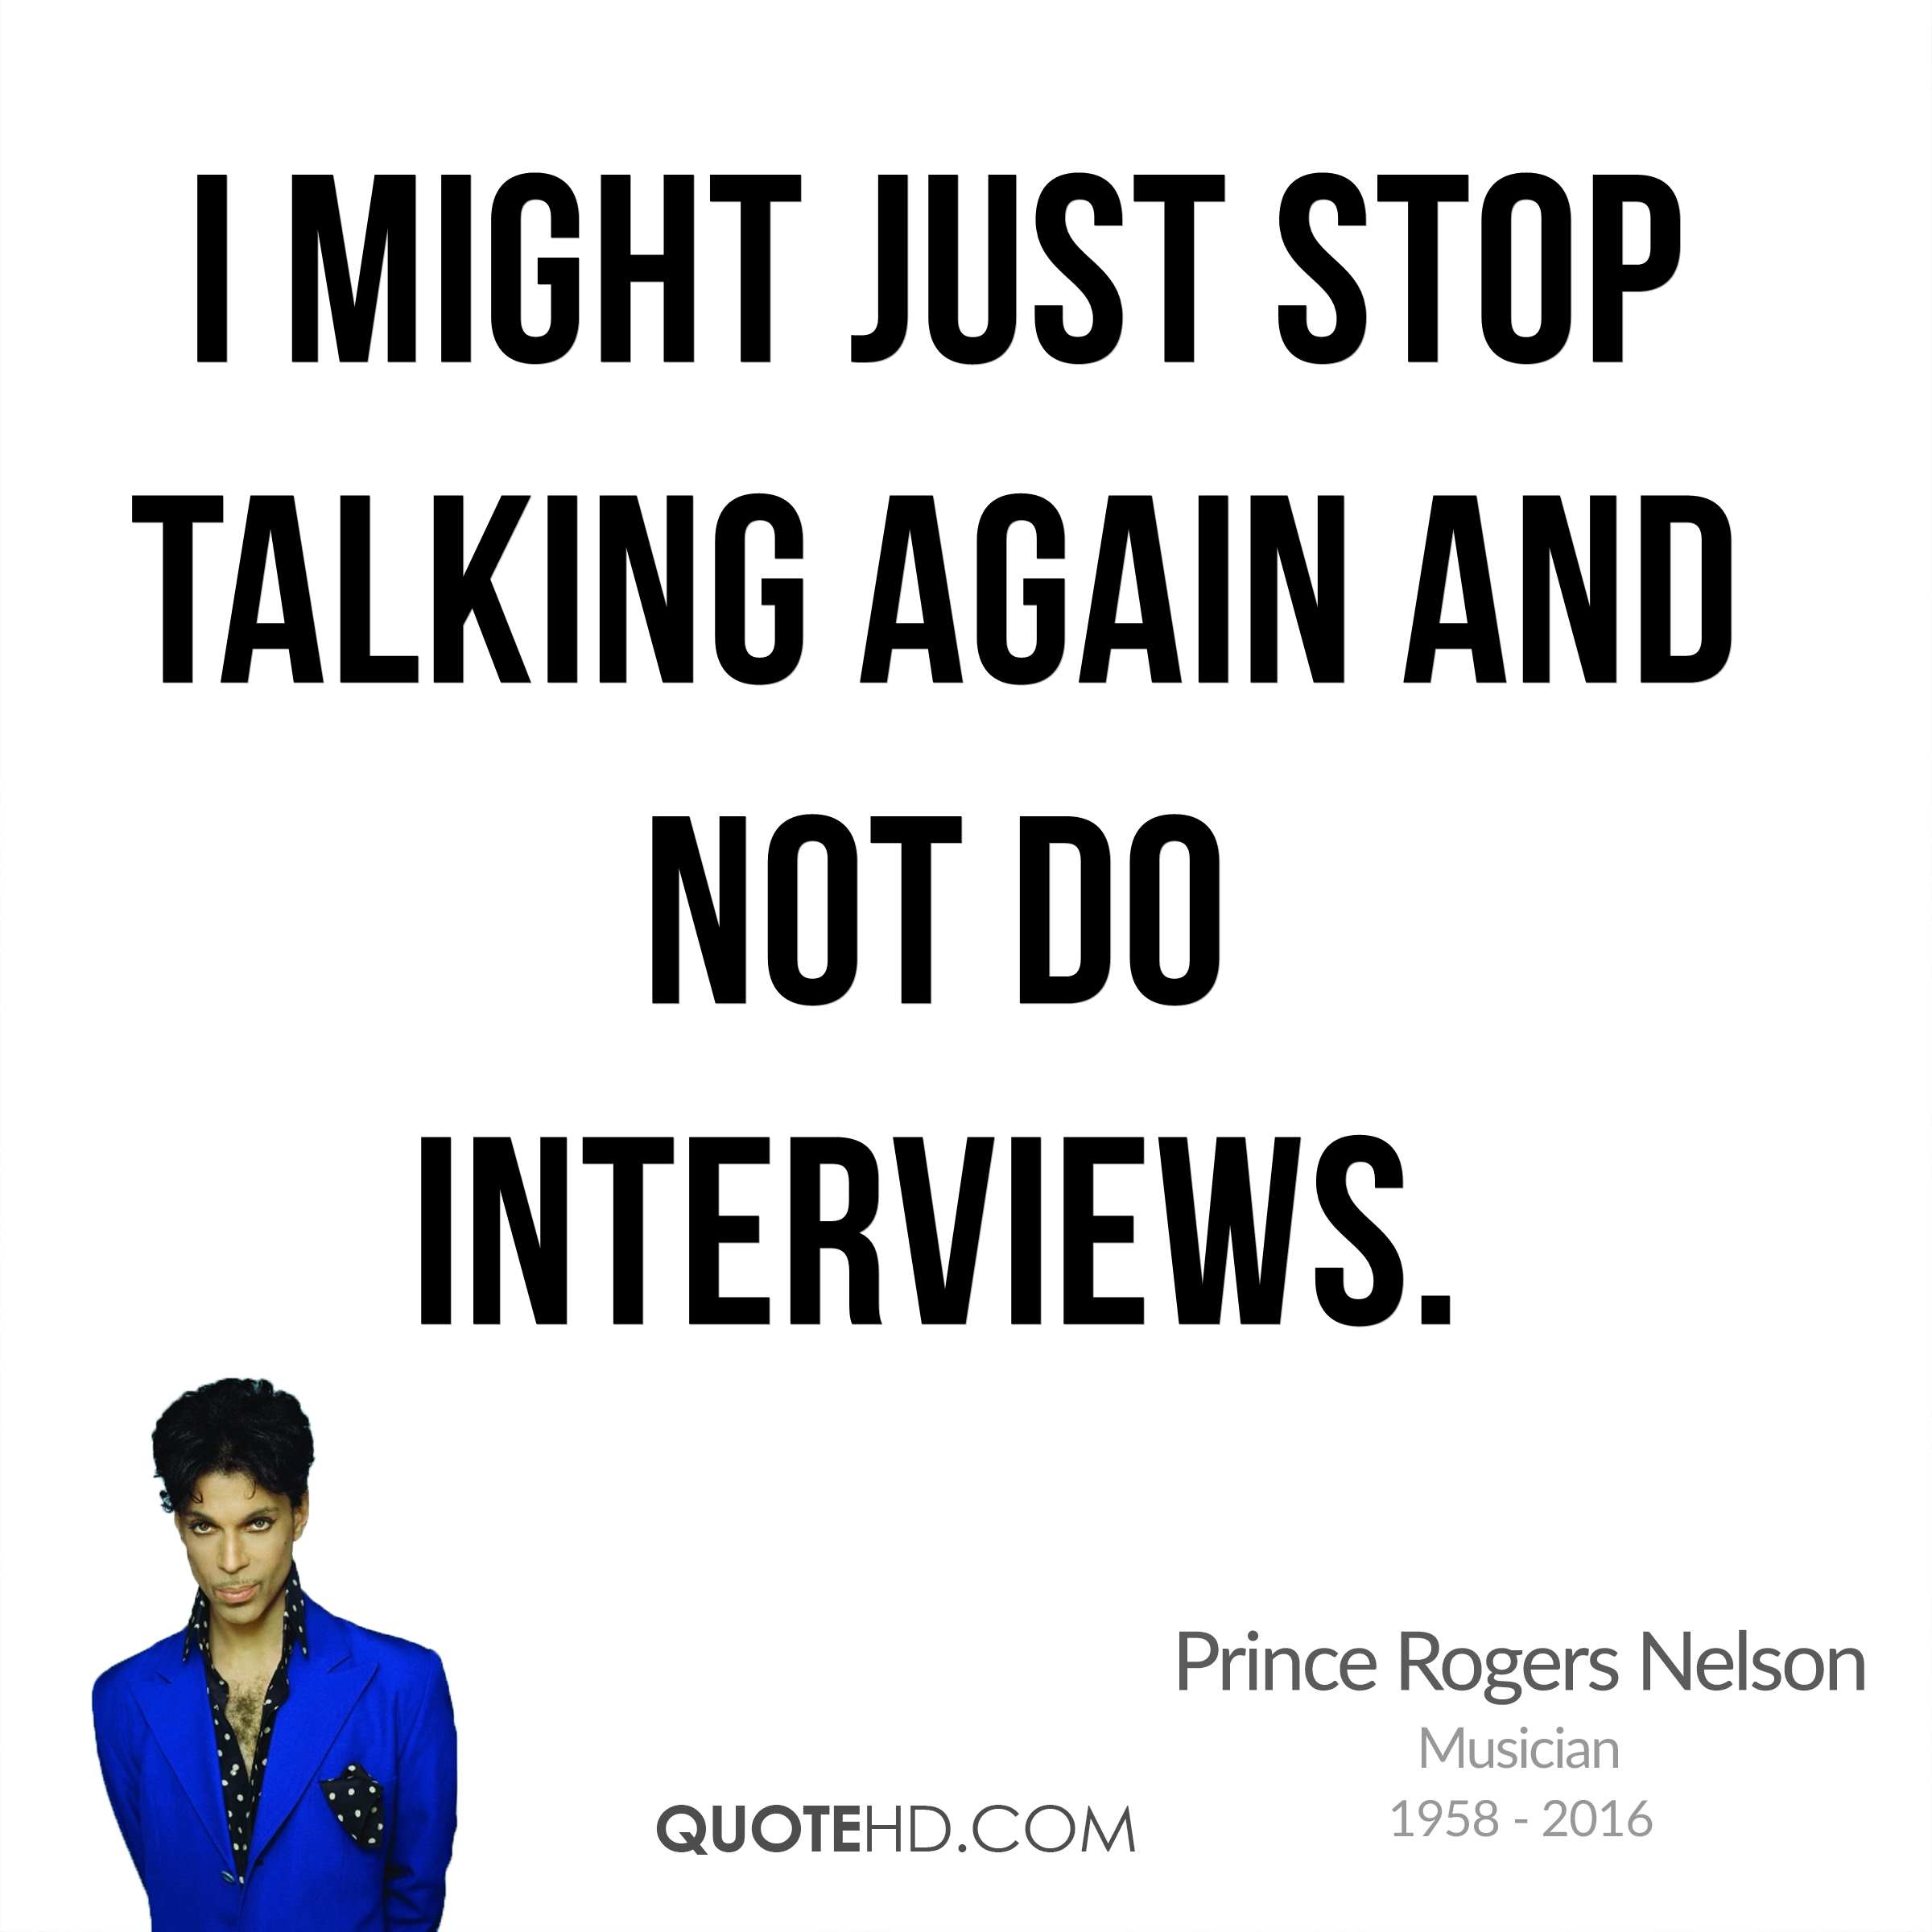 I might just stop talking again and not do interviews.